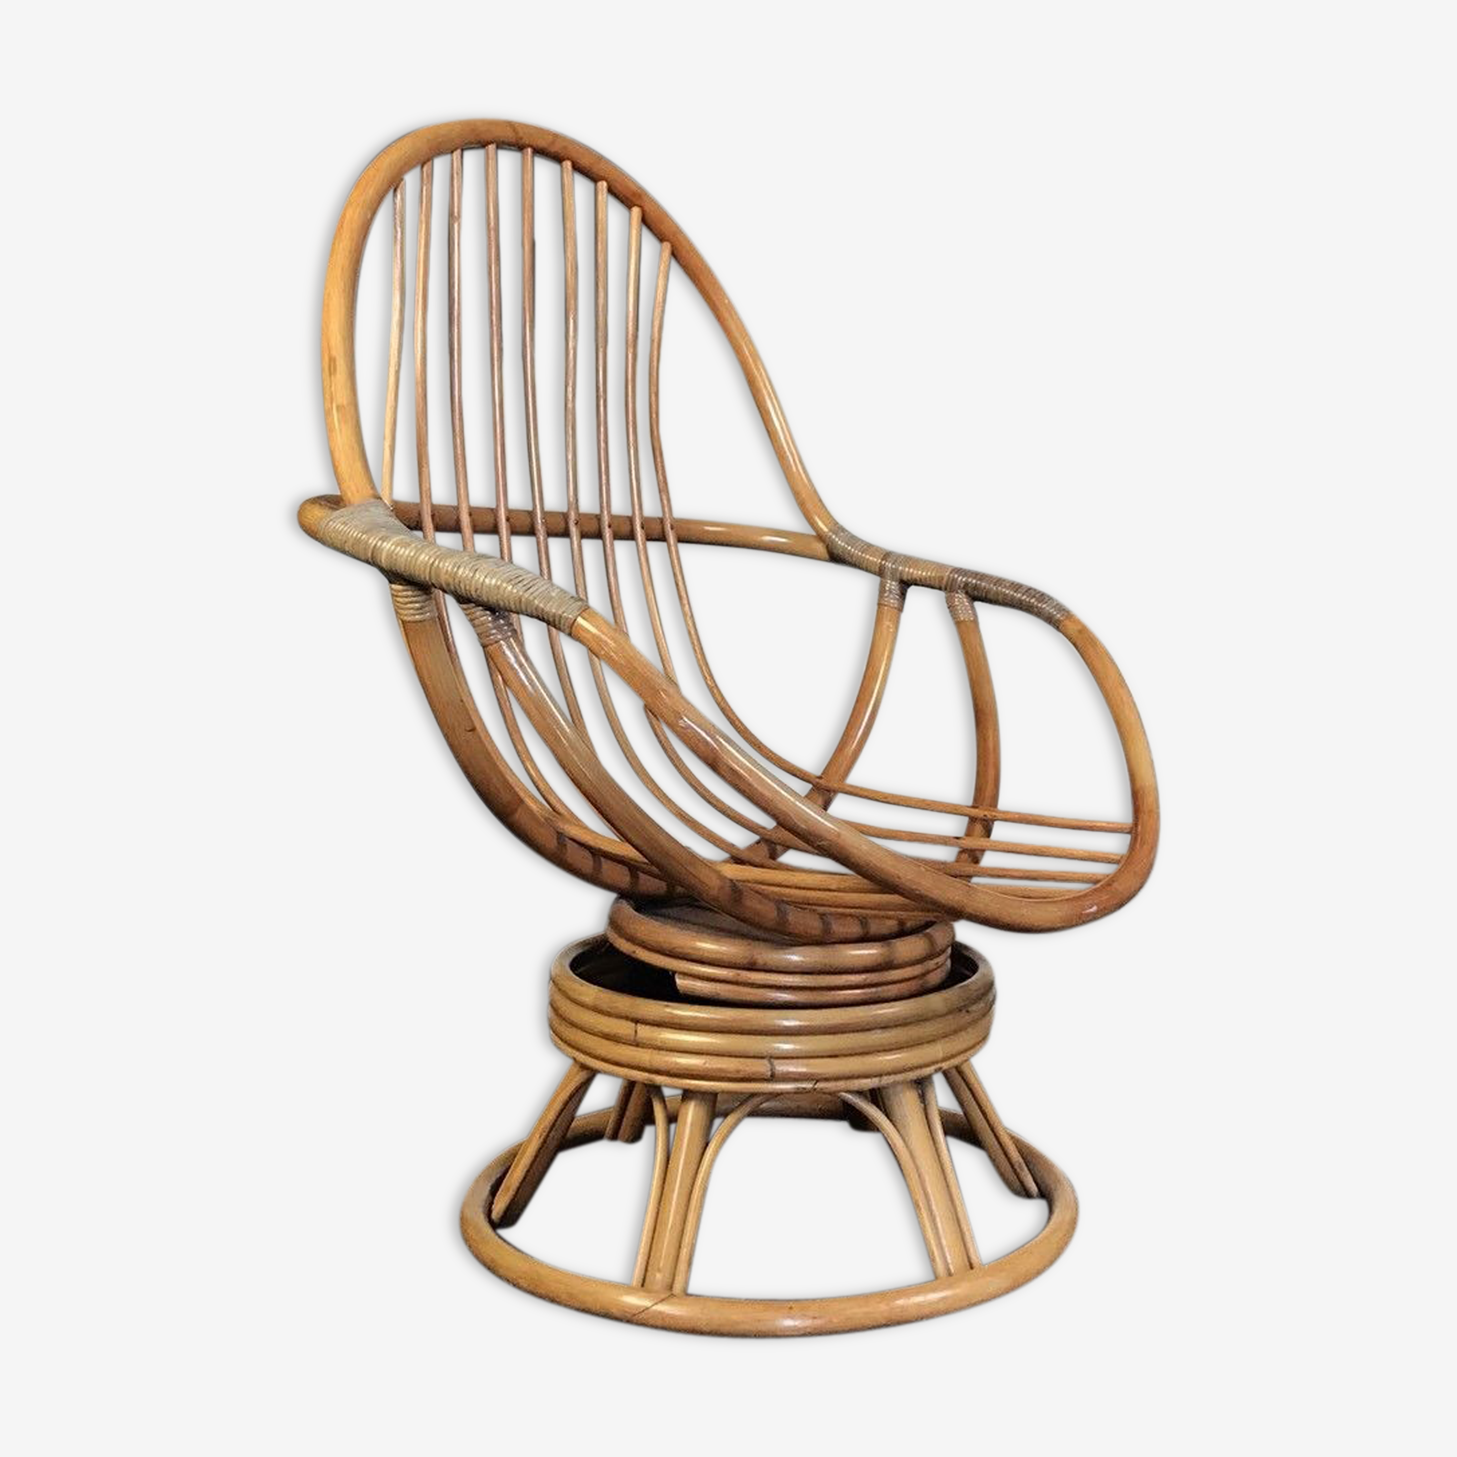 The century Wicker Peacock Chair 70 s